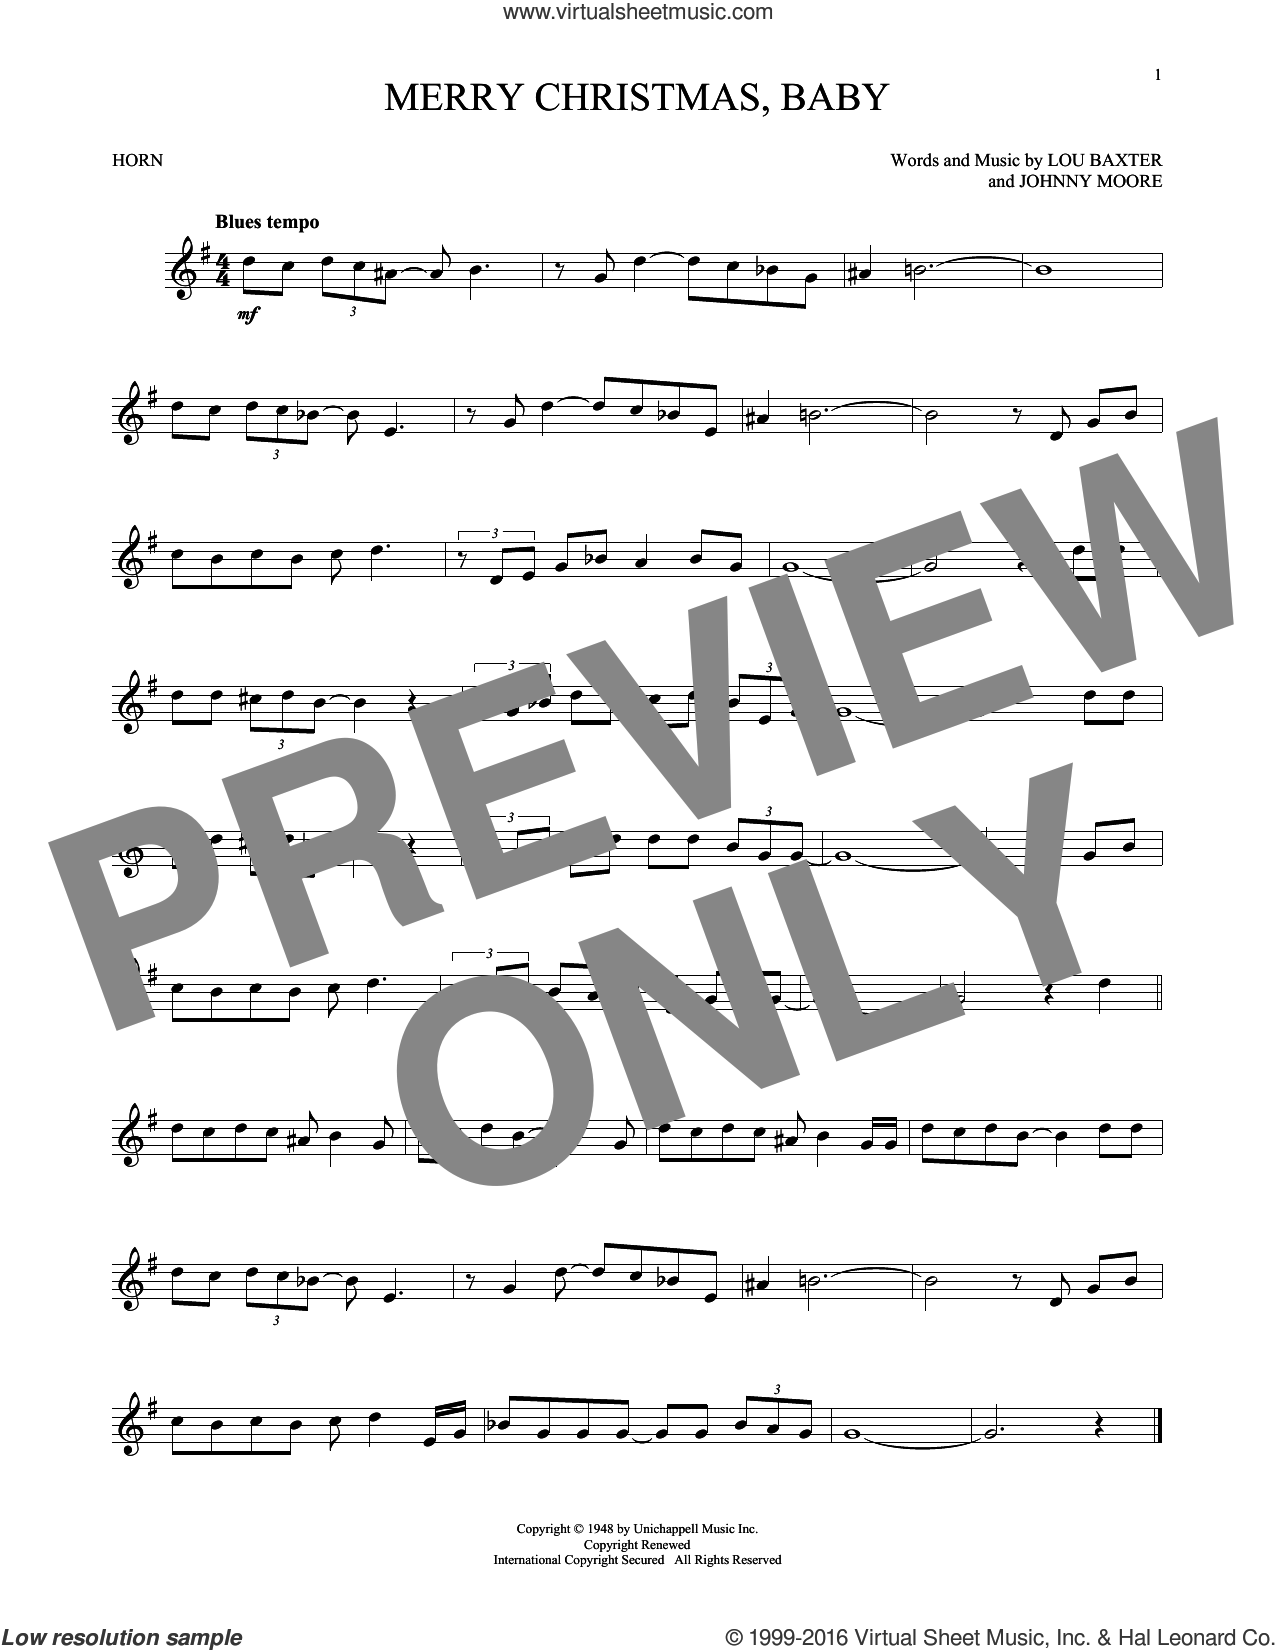 Merry Christmas, Baby sheet music for horn solo by Lou Baxter